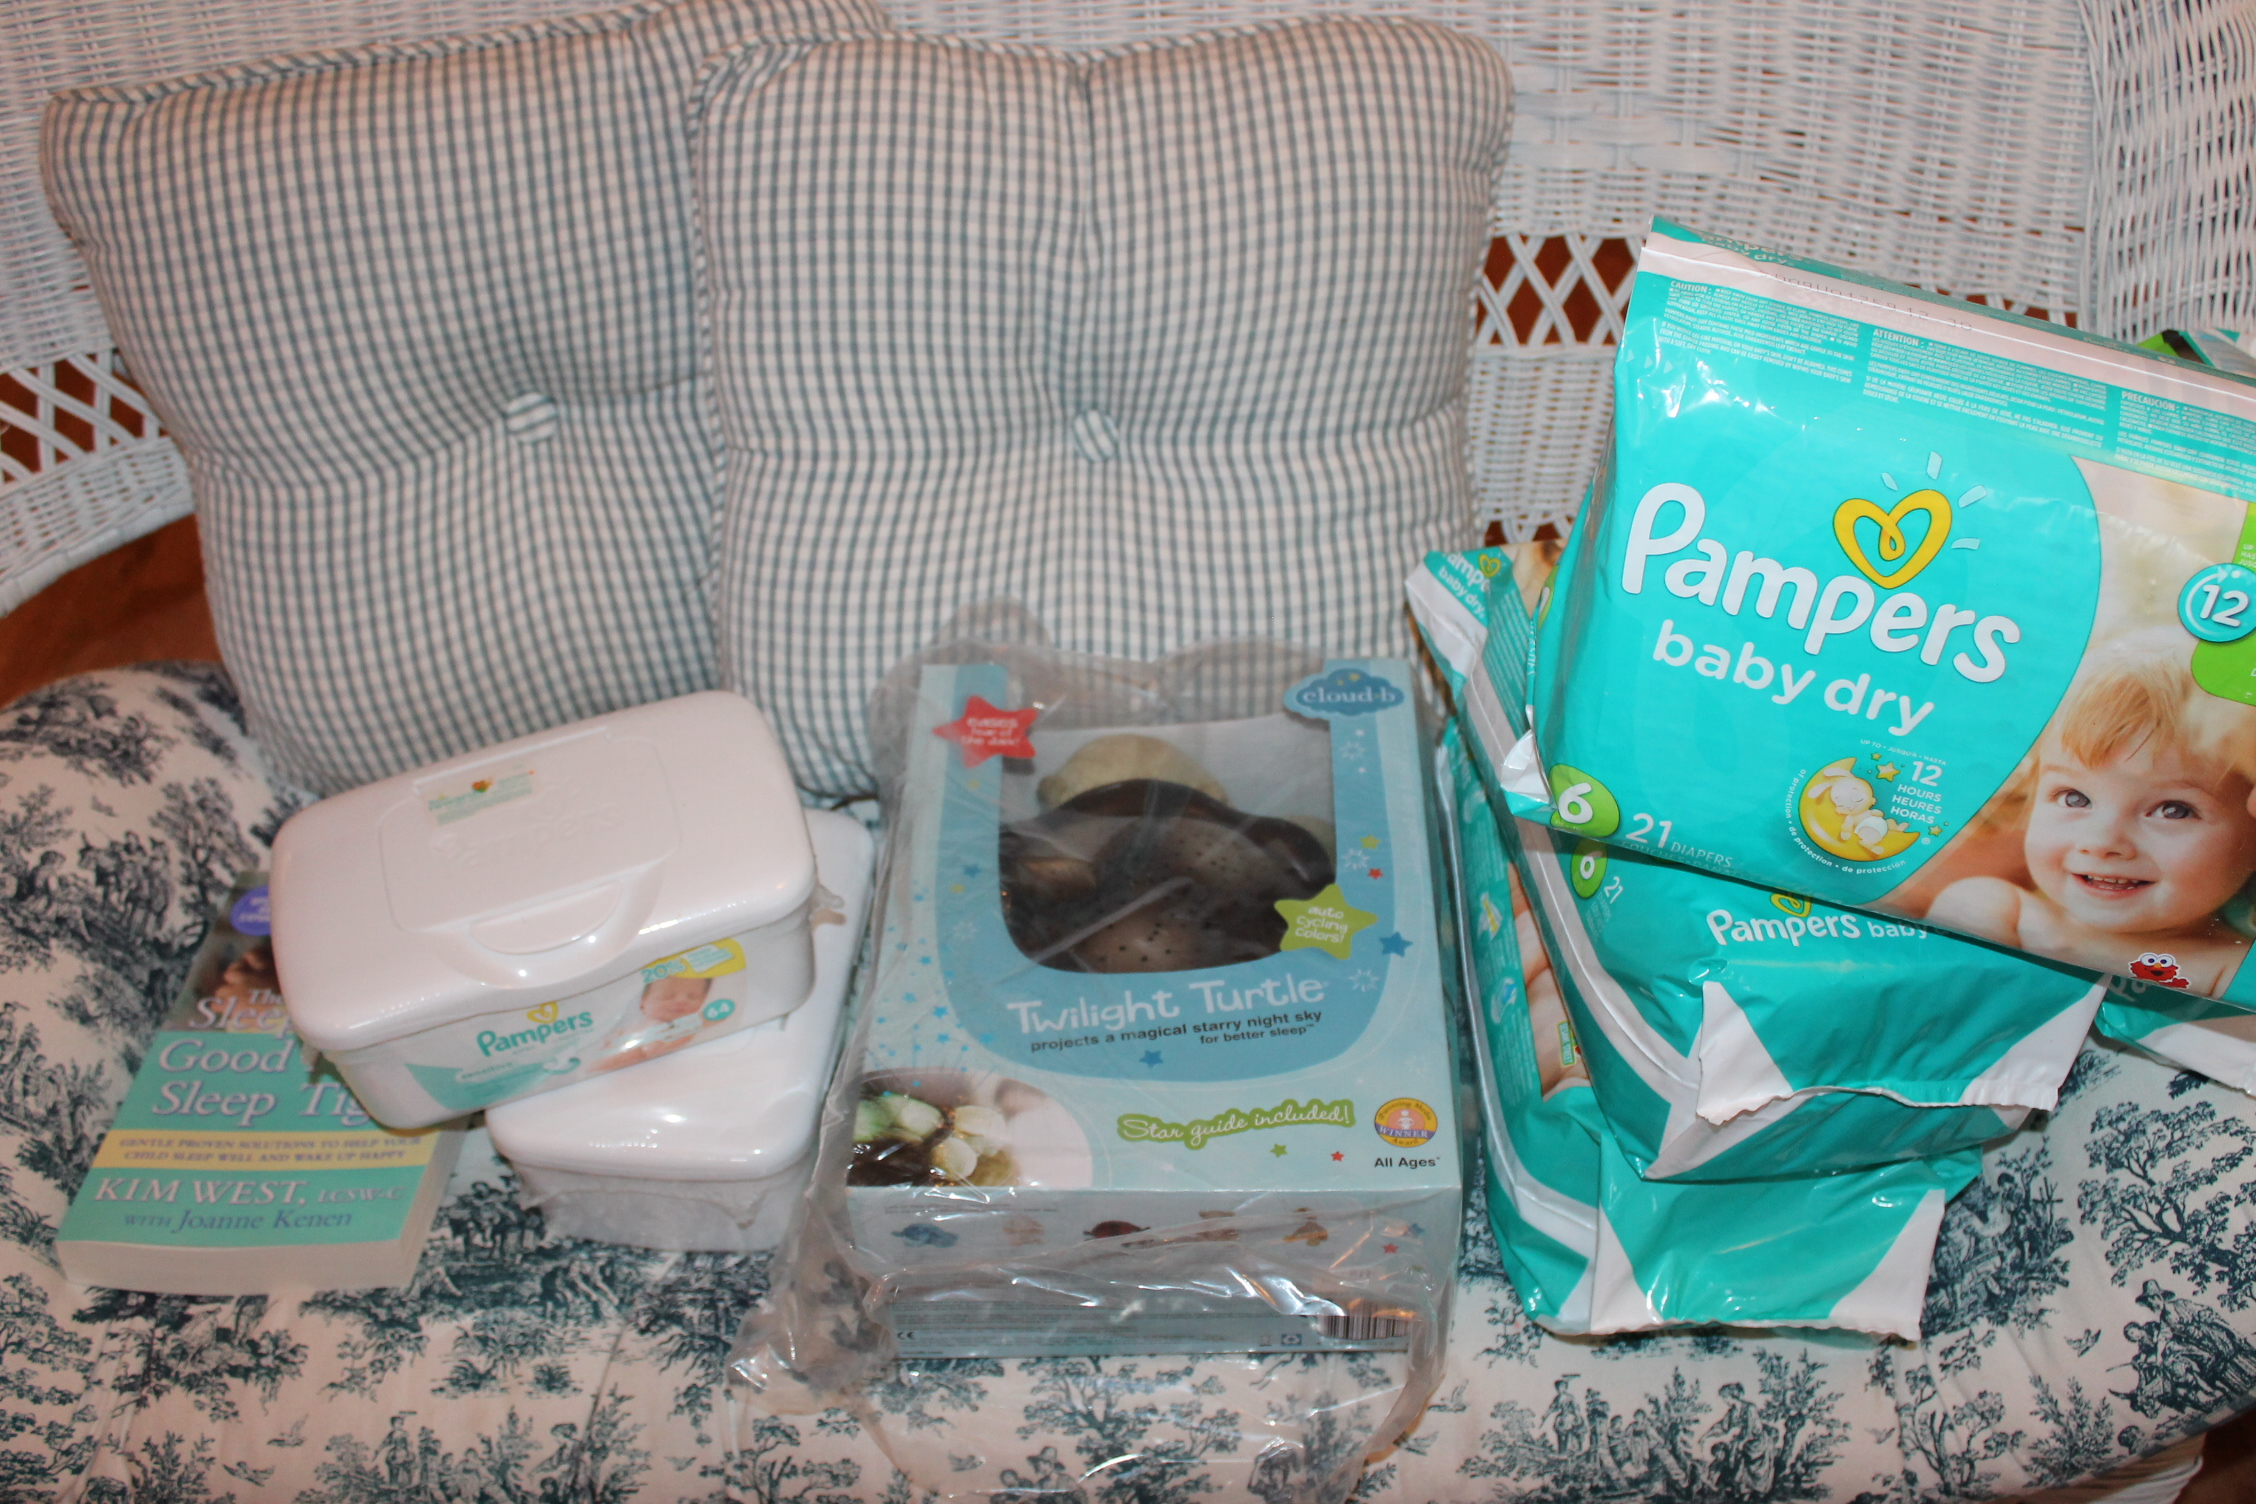 #PampersSleepChat & Pampers Multi Product Giveaway